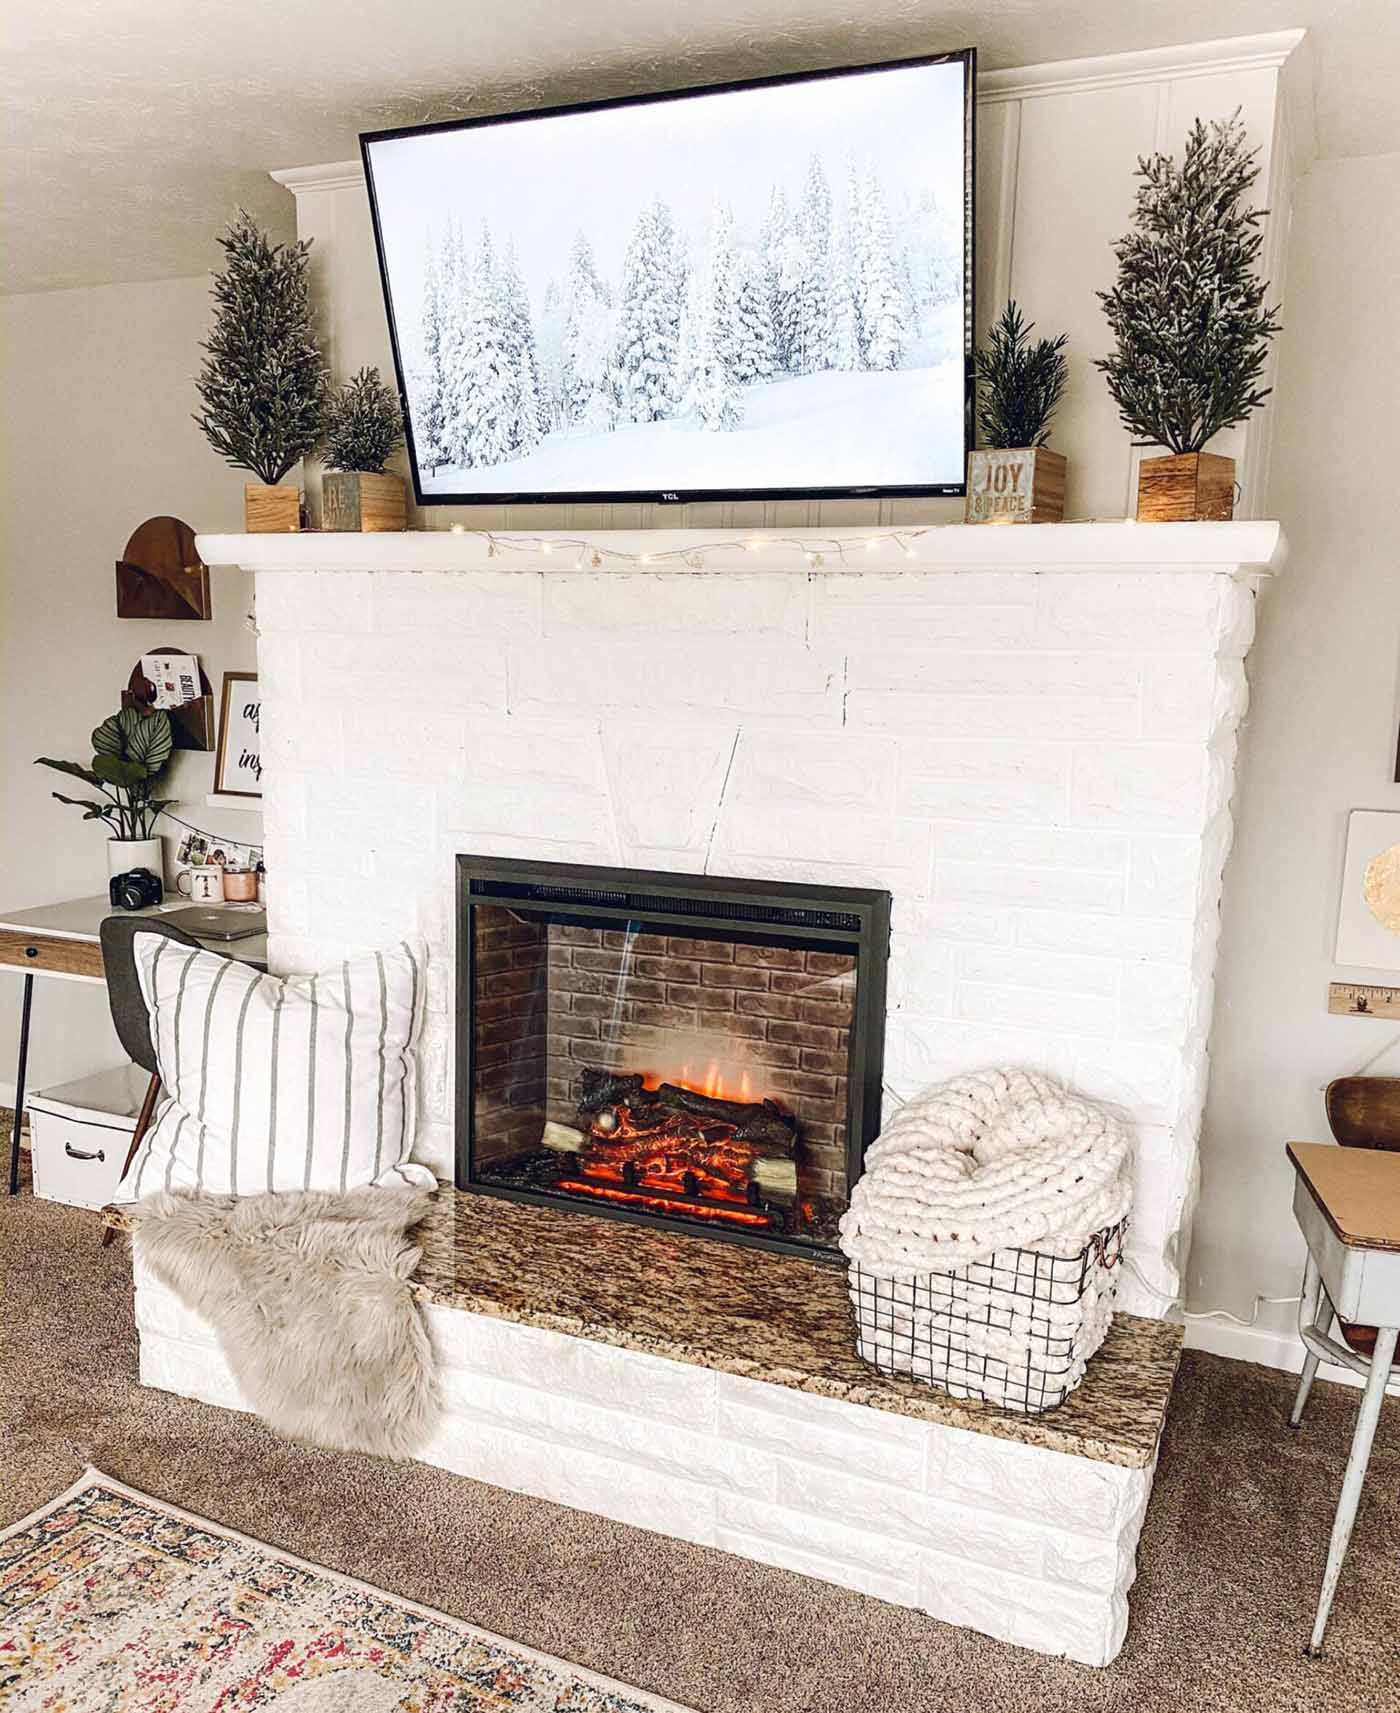 Learn the art of hygge and how to embrace hygge style at home. Plus, 5 easy hygge decor ideas that will instantly cozy up your space!